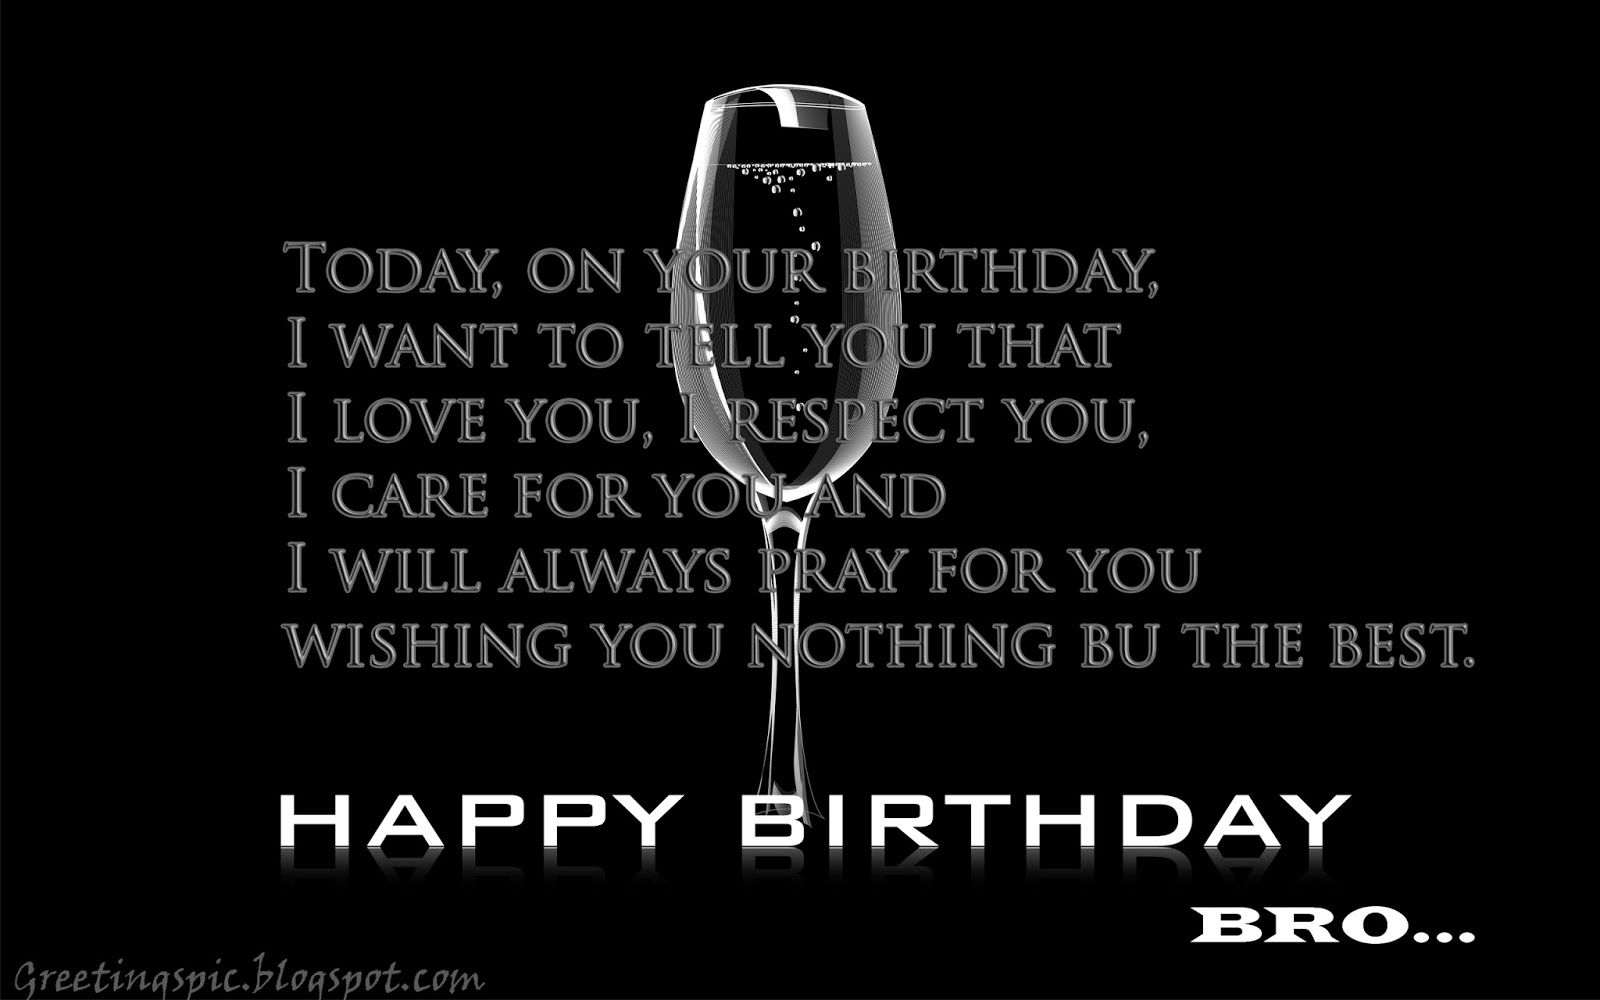 wishes quotes for brother with images birthday wishes quotes for ...